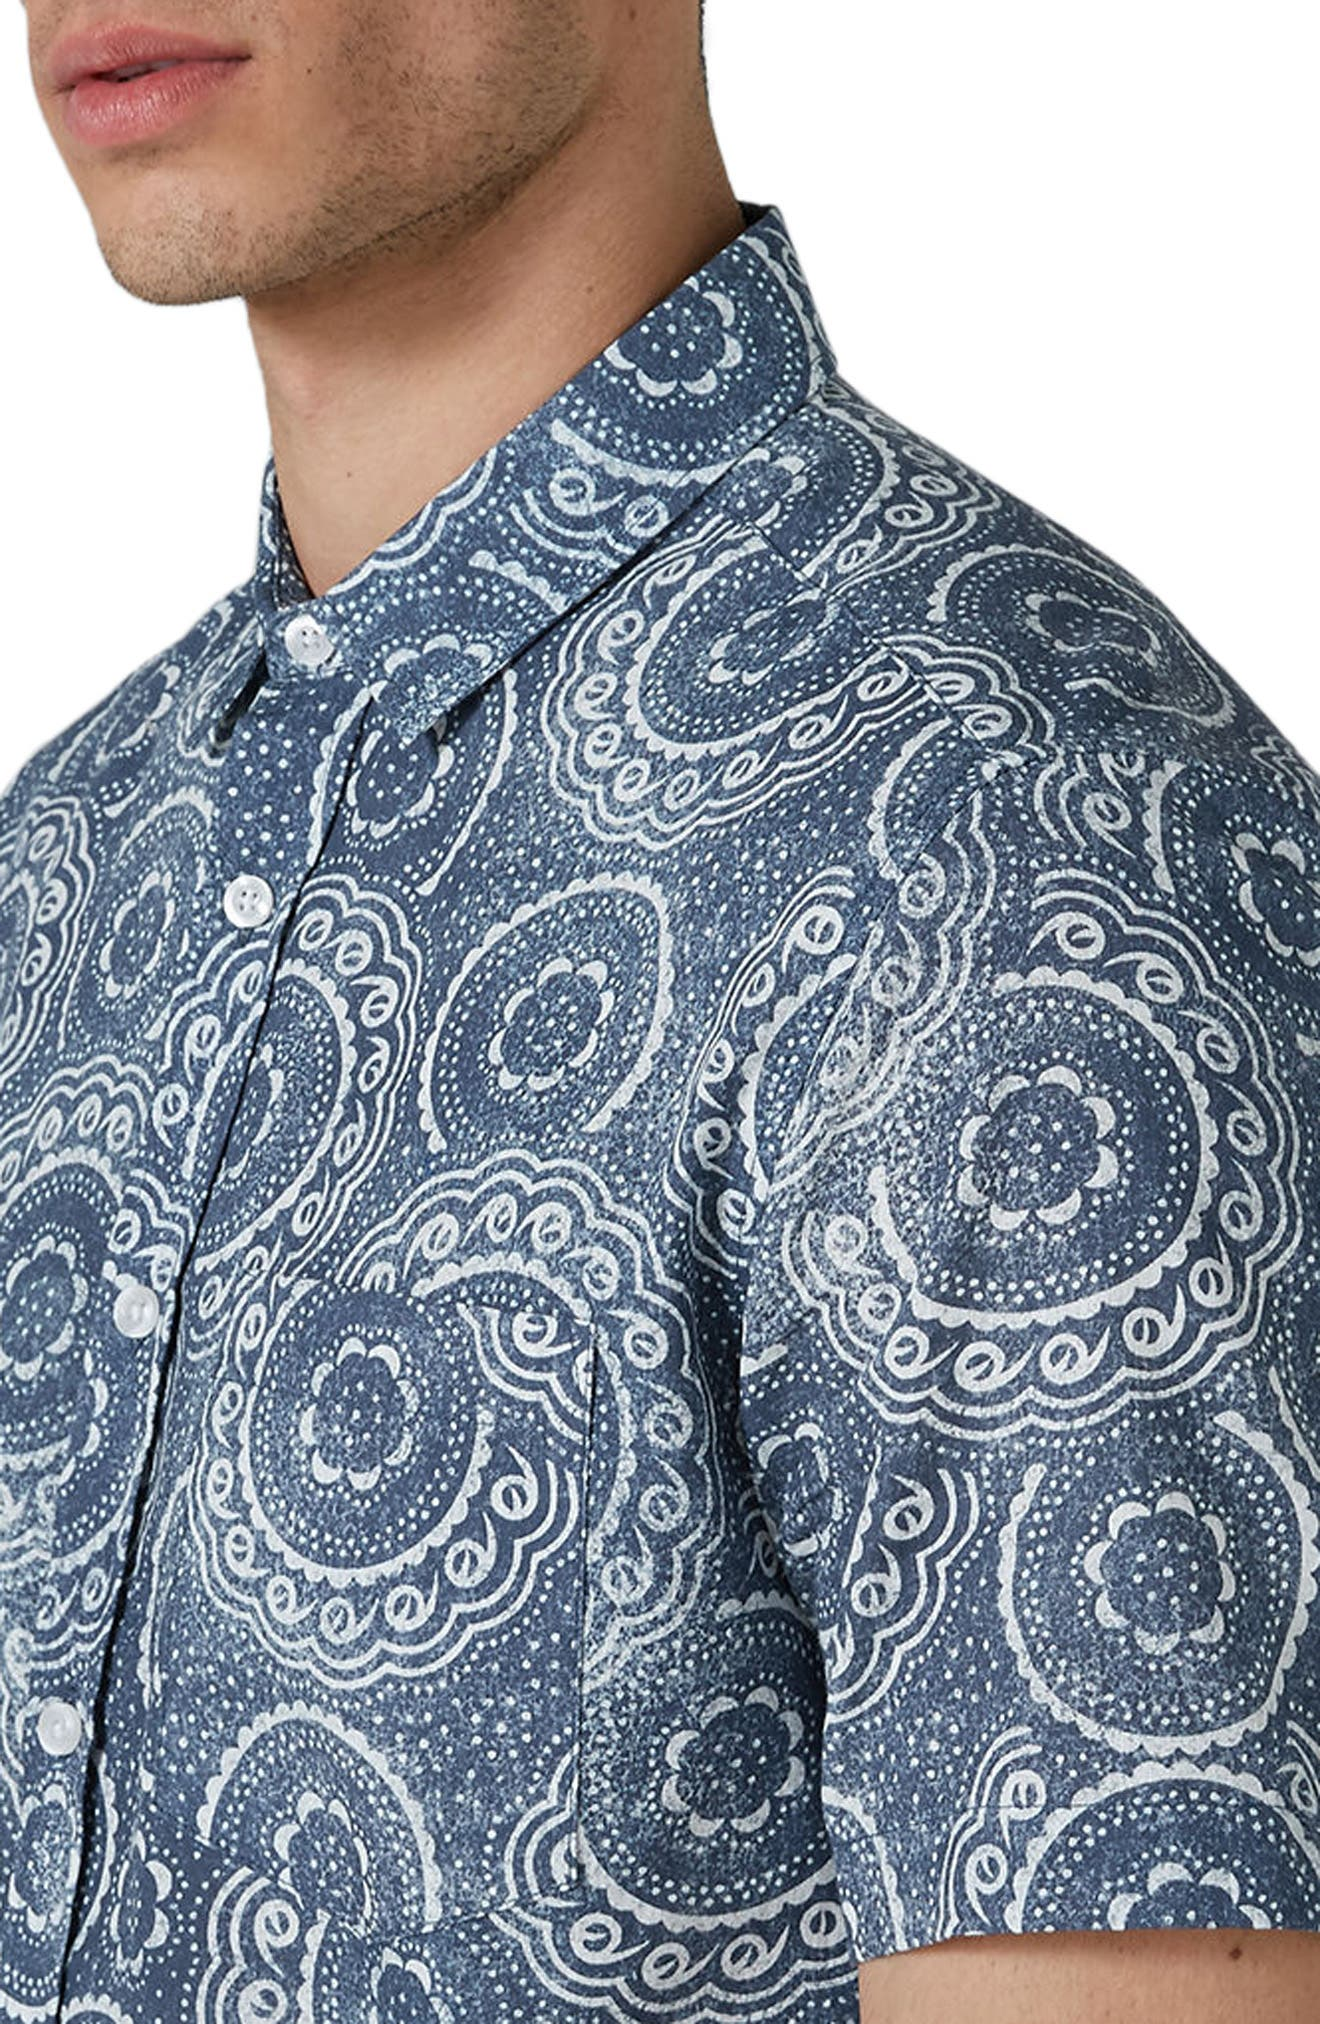 Trim Fit Circle Print Woven Shirt,                             Alternate thumbnail 4, color,                             Blue Multi